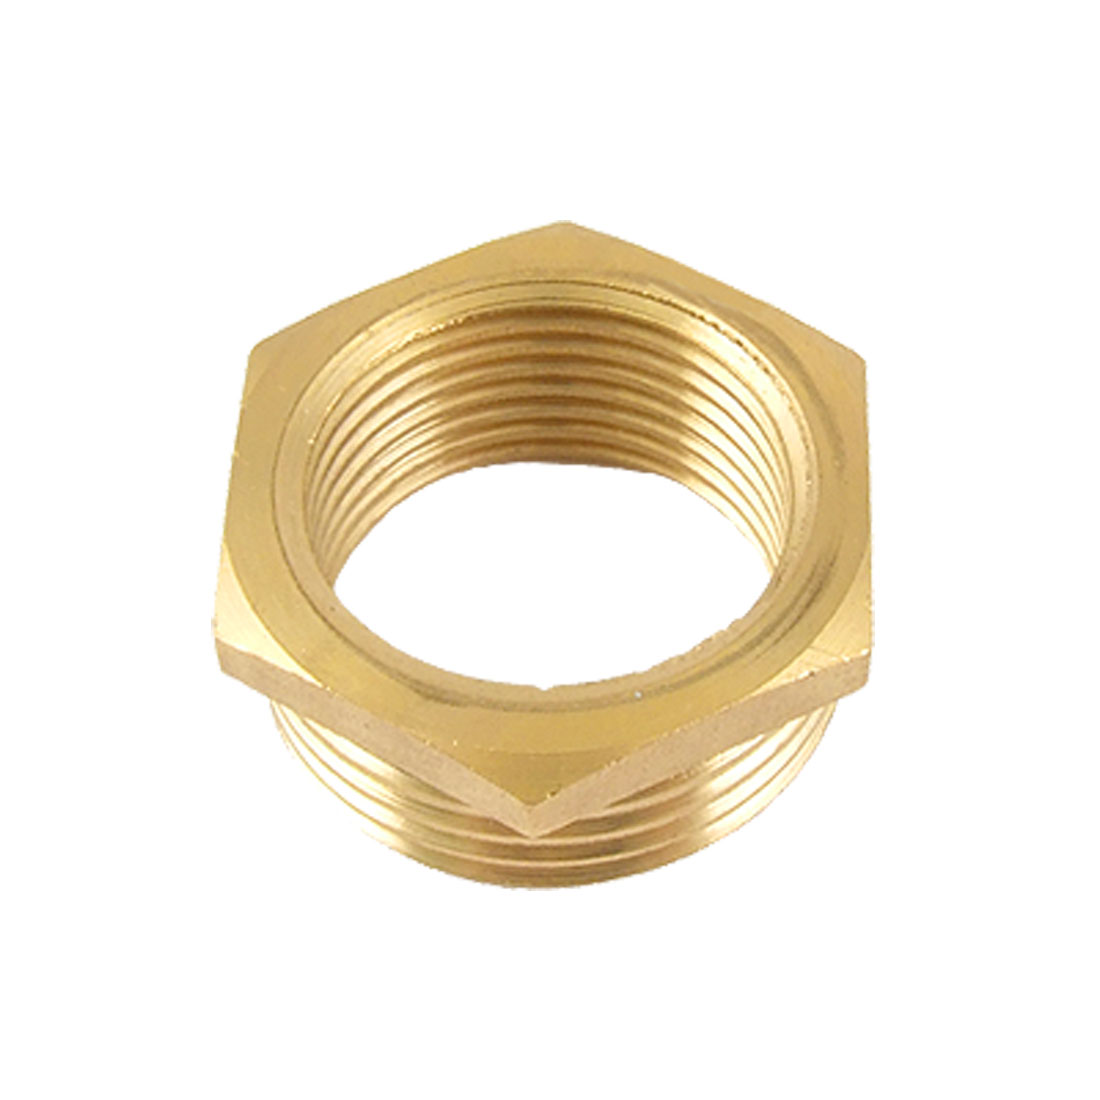 "1.26"" Male 0.98"" Female Thread Pipe Fittings Gold Tone"